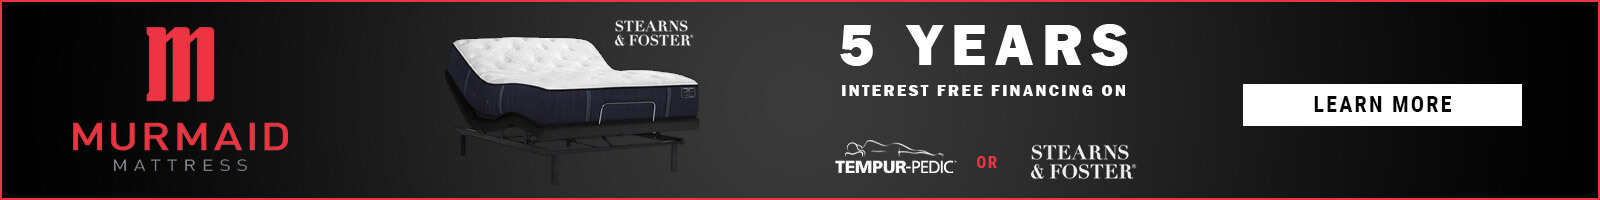 5 Years Interest Free Financing on Tempur-Pedic and Stearns & Foster